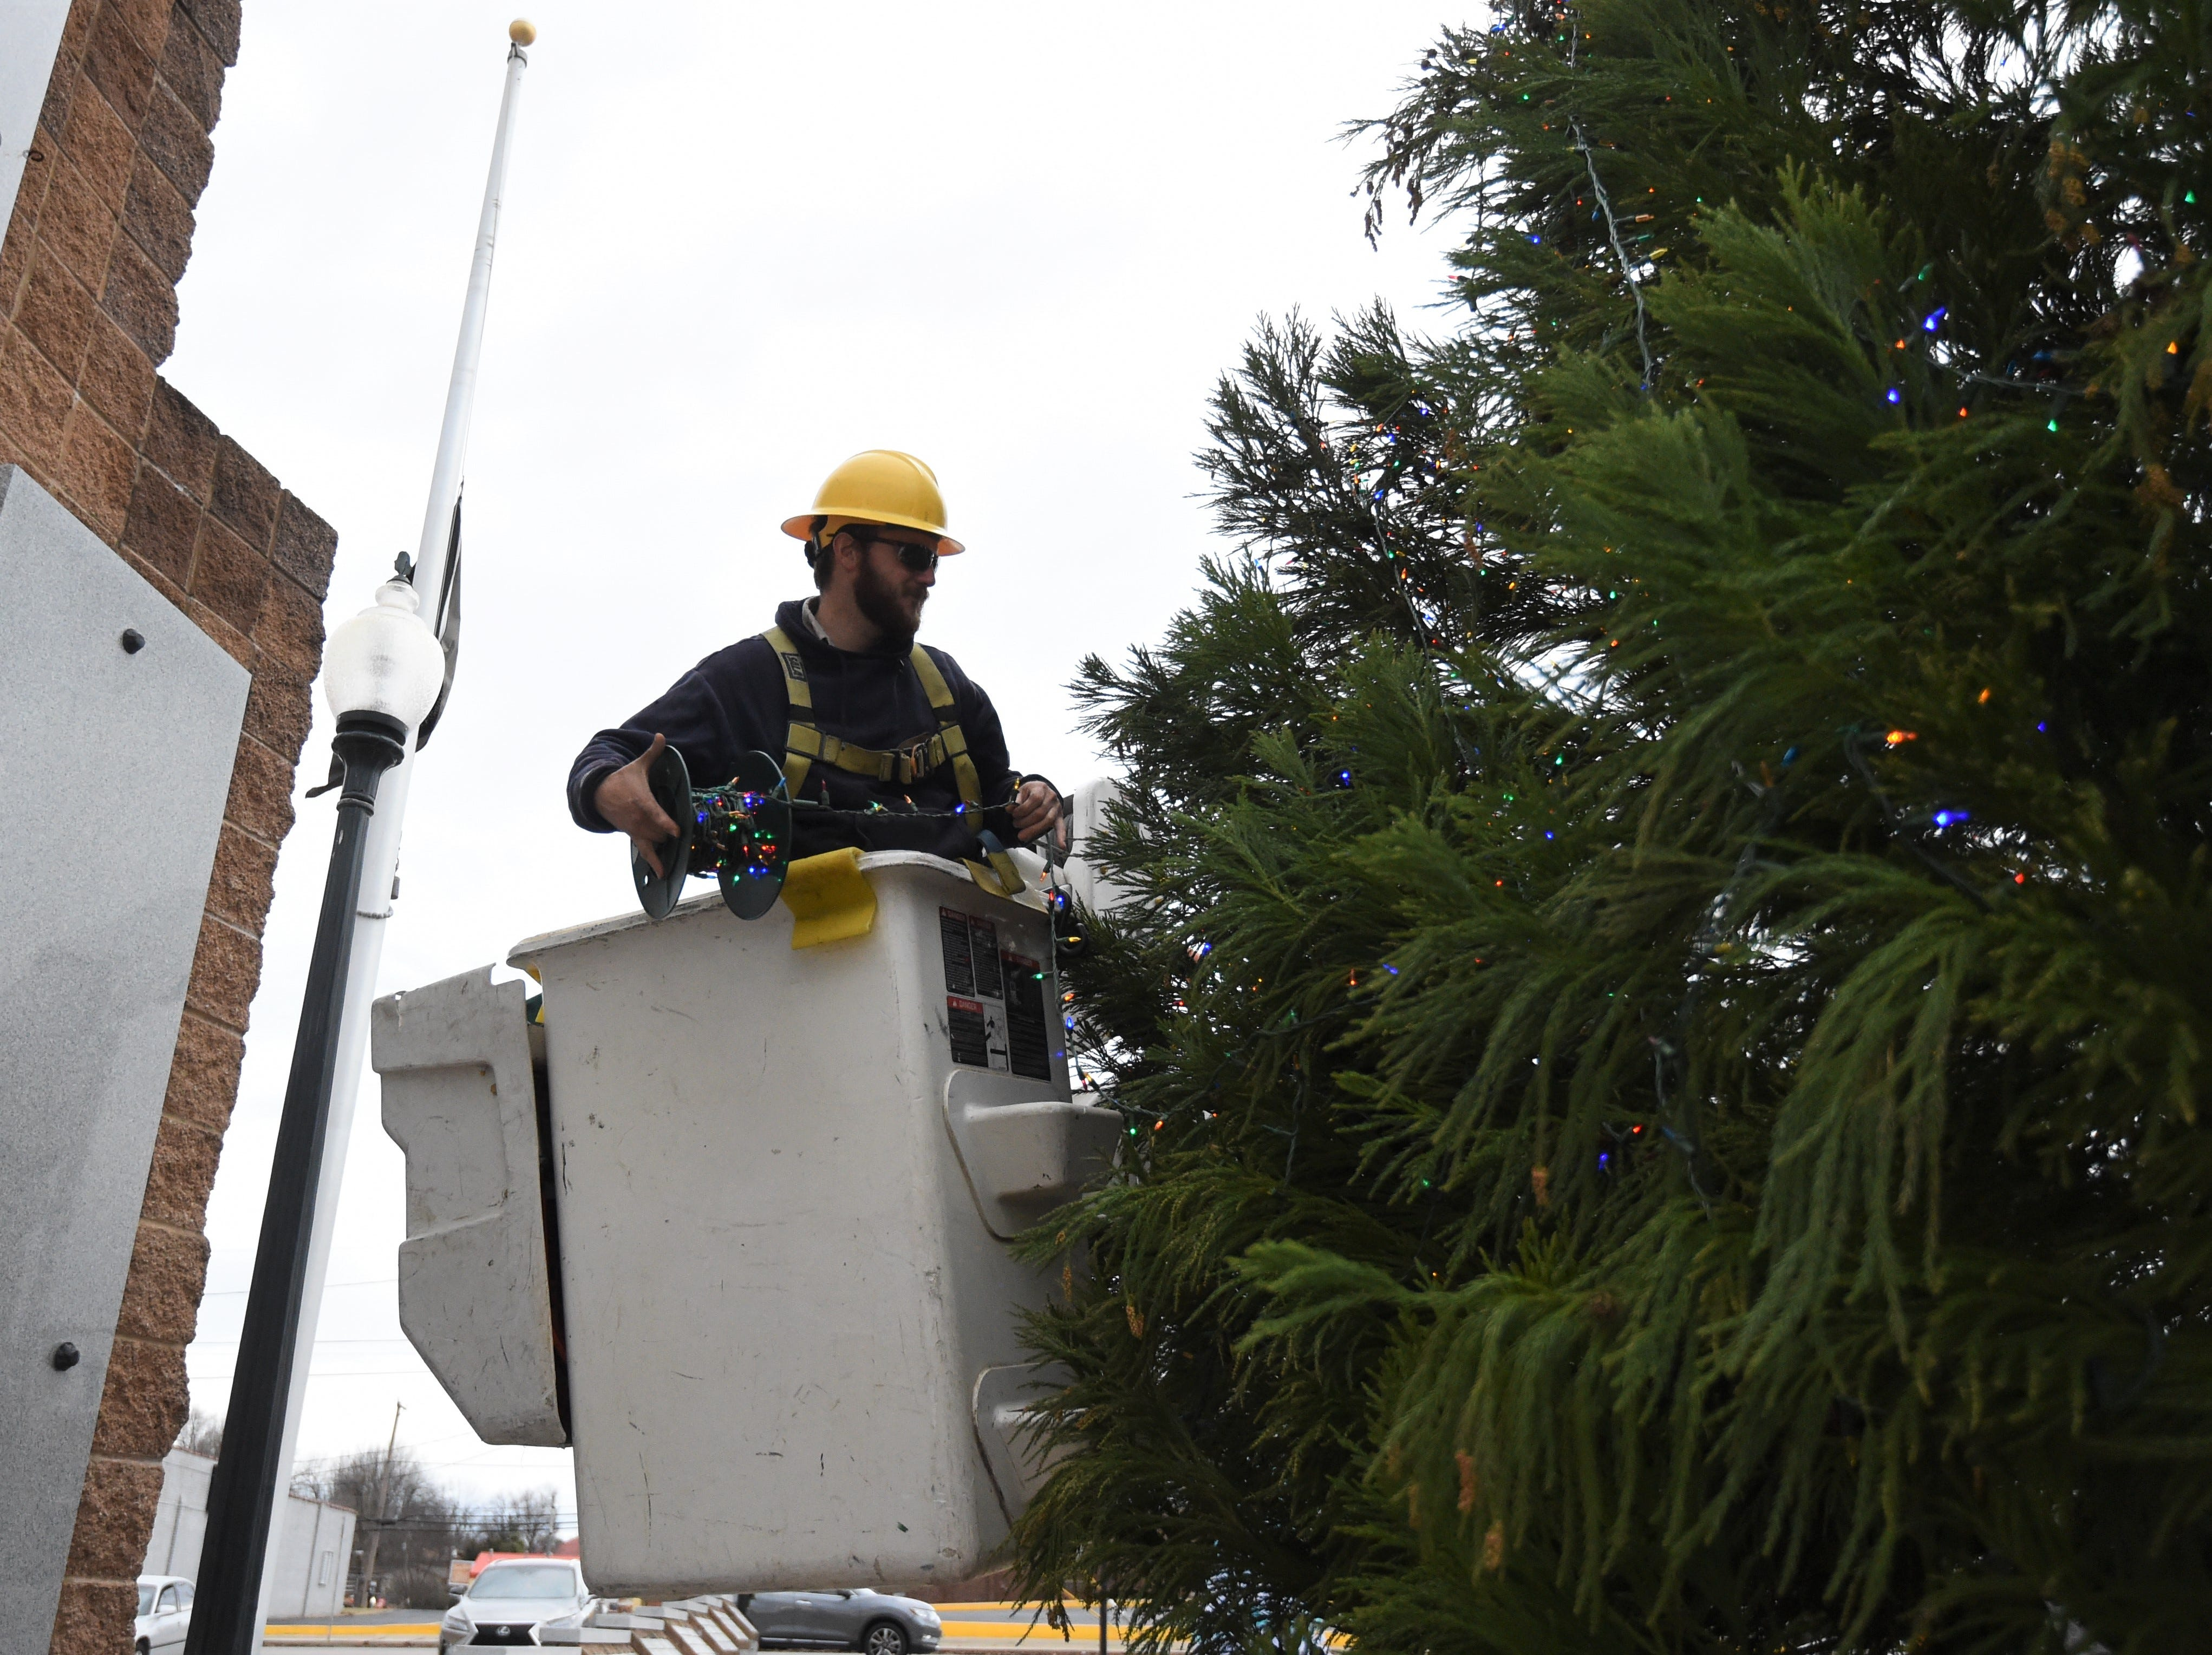 Chance Bailey with the North Arkansas Electric Cooperative uses a bucket truck Thursday to help trim the 30-foot Christmas tree on display at the Veterans Plaza in downtown Mountain Home. The 30-foot tree will make its official debut tonight in the First Security Bank Tree Lighting Ceremony.